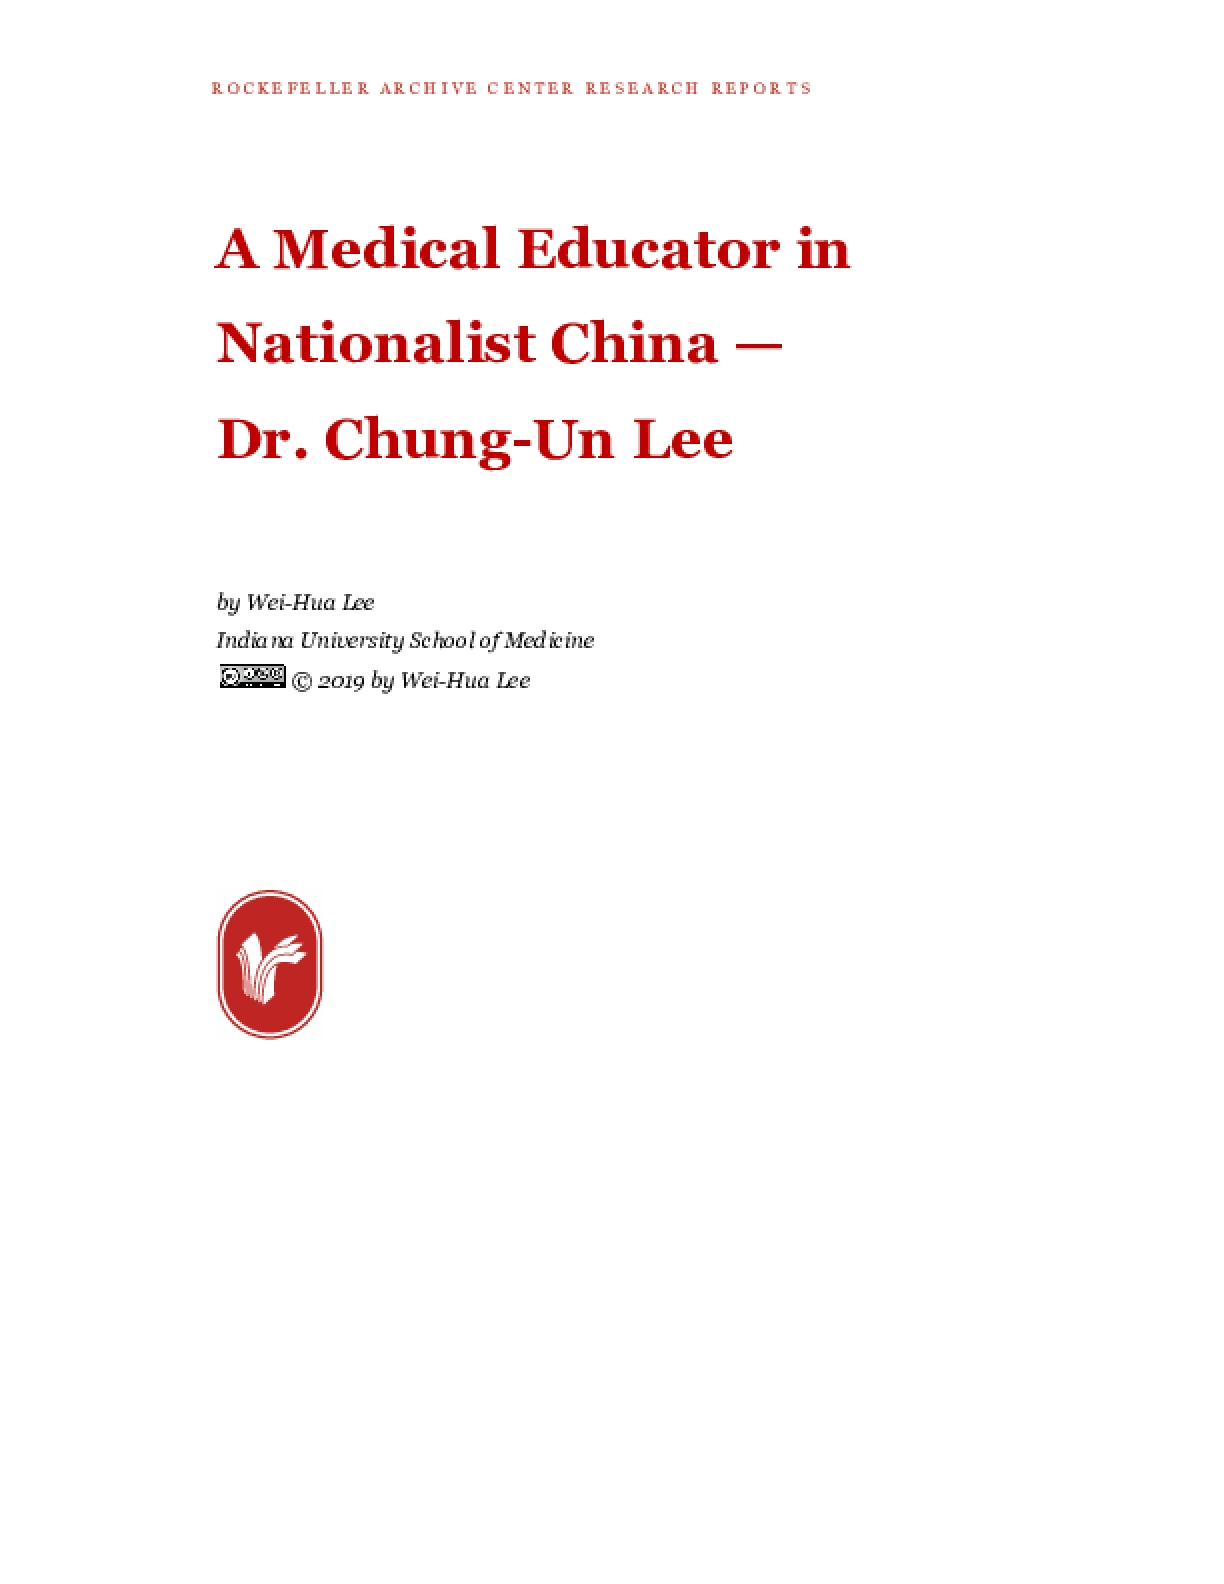 A Medical Educator in Nationalist China — Dr. Chung-Un Lee